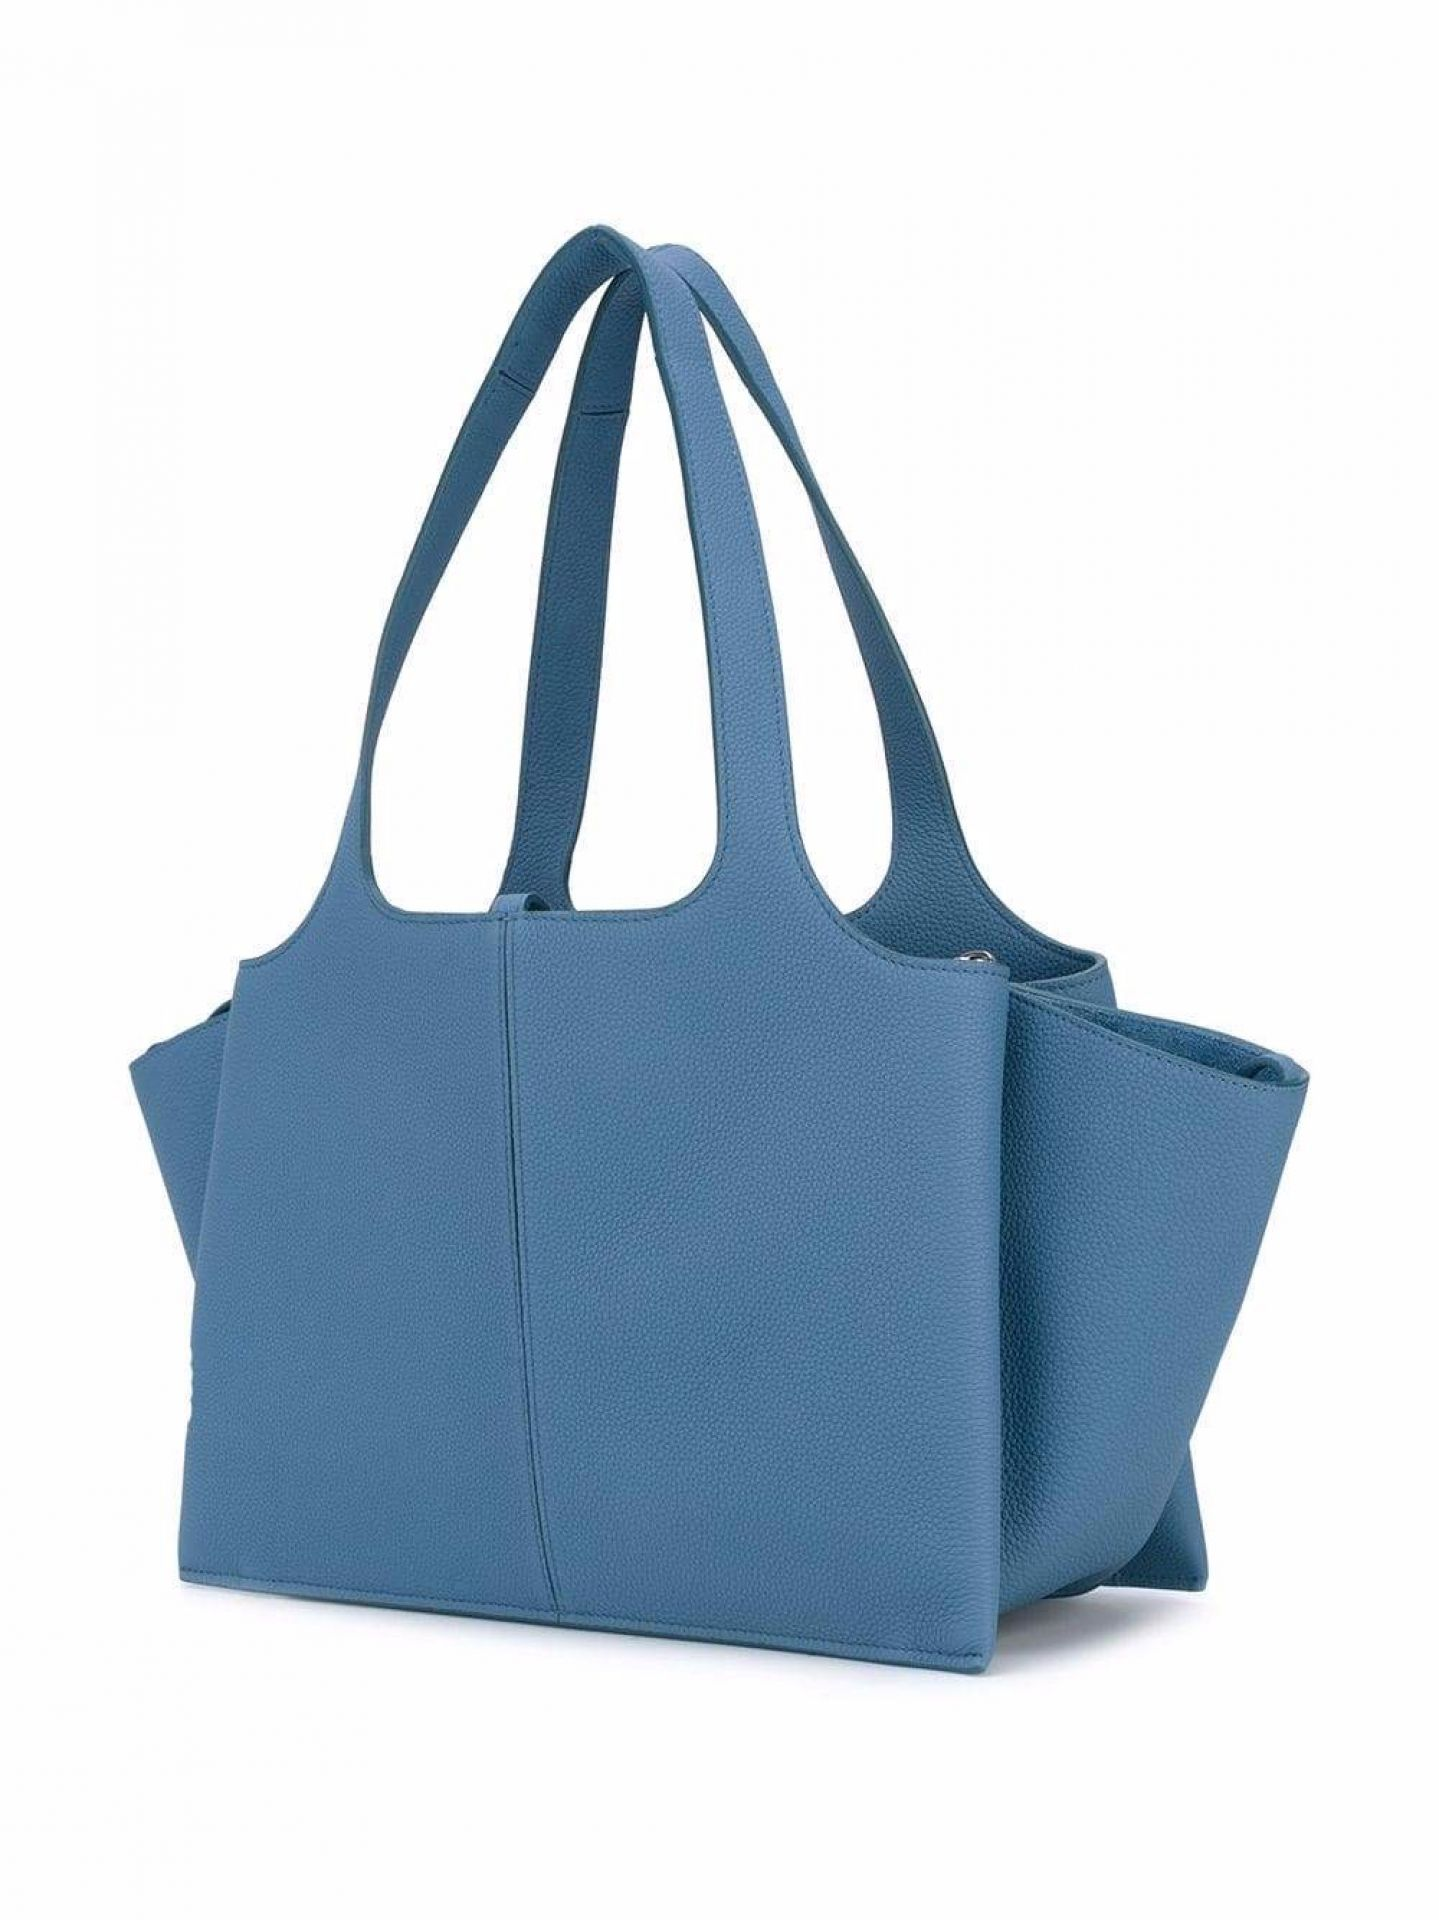 CELINE WOMENS BLUE GRAINED CALF LEATHER TRI-FOLD SHOULDER BAG